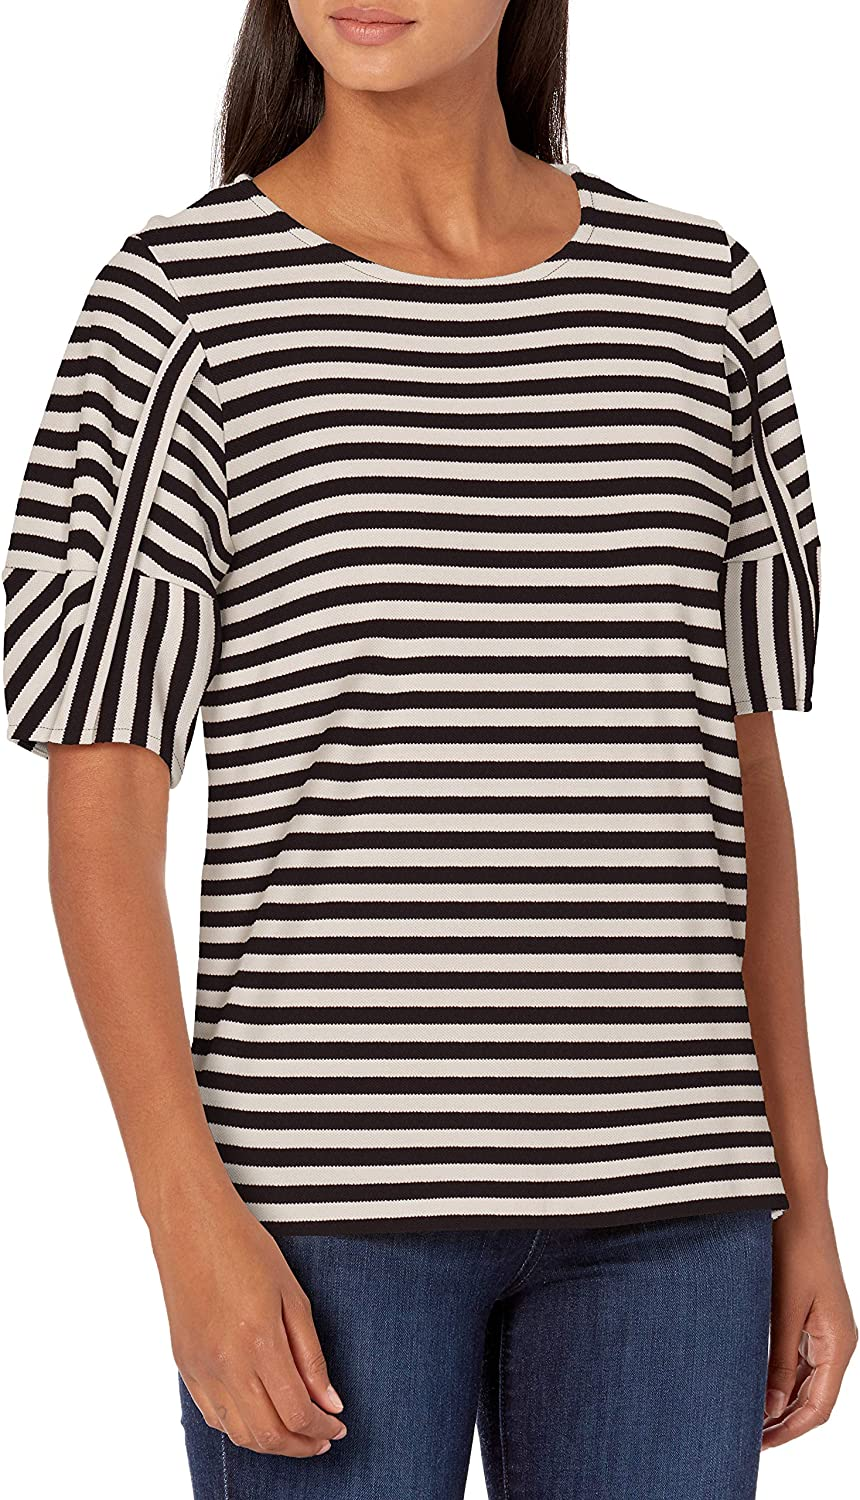 Ella Moss Women's Connie Stylish Max 66% OFF Puffed shopping Sleeve Knit Top